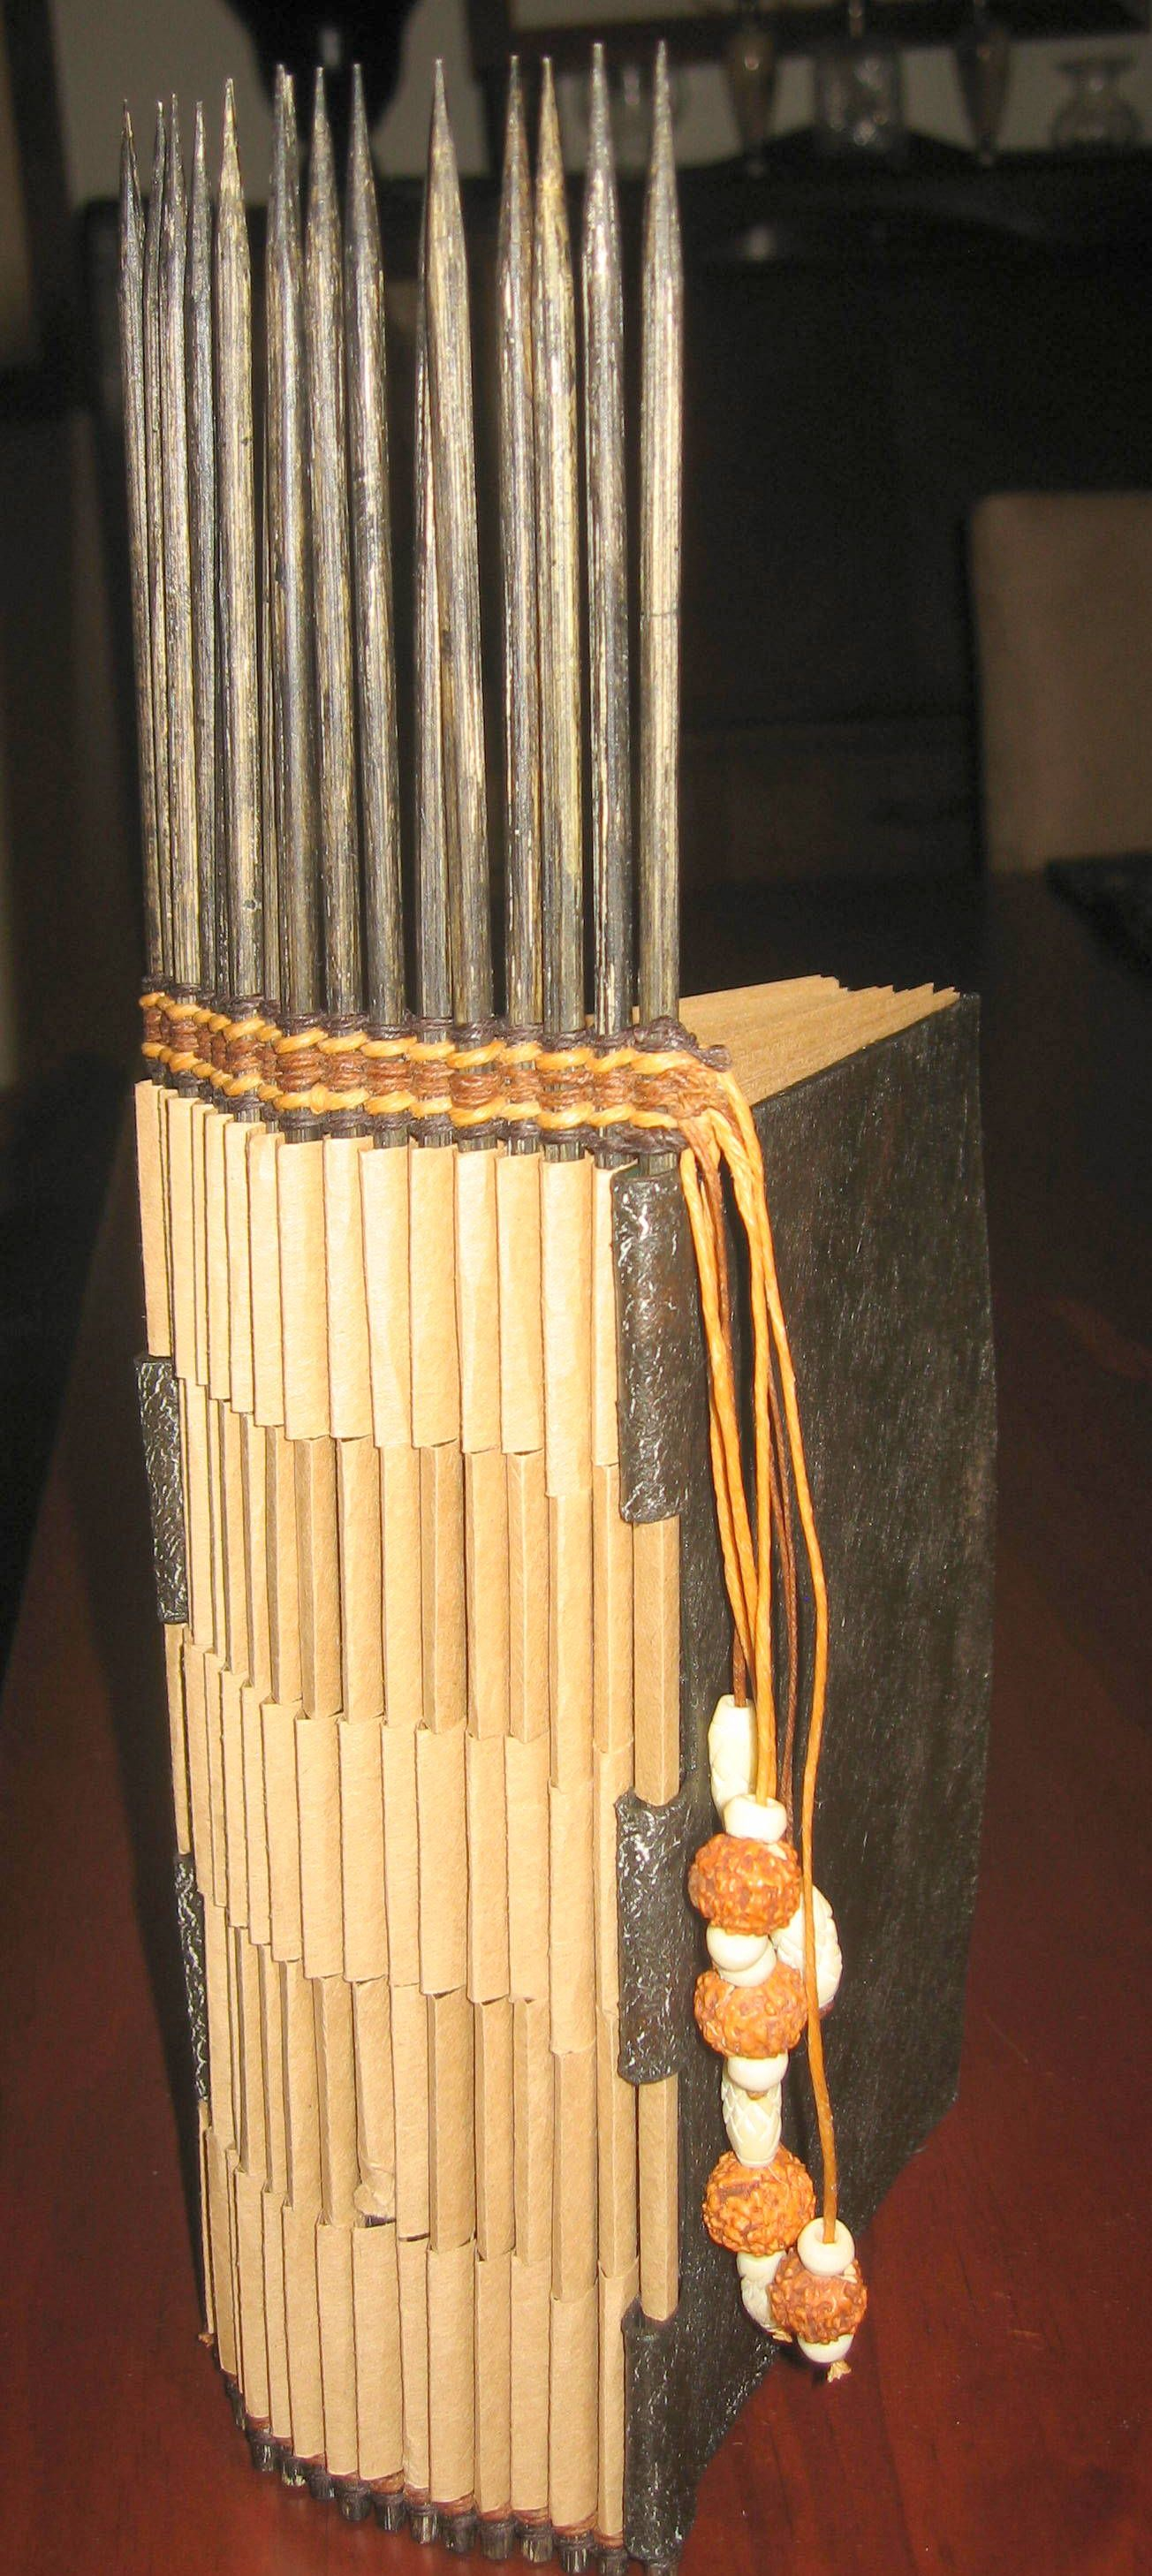 My Time Out Of The World Book Binding Bookbinding Book Making